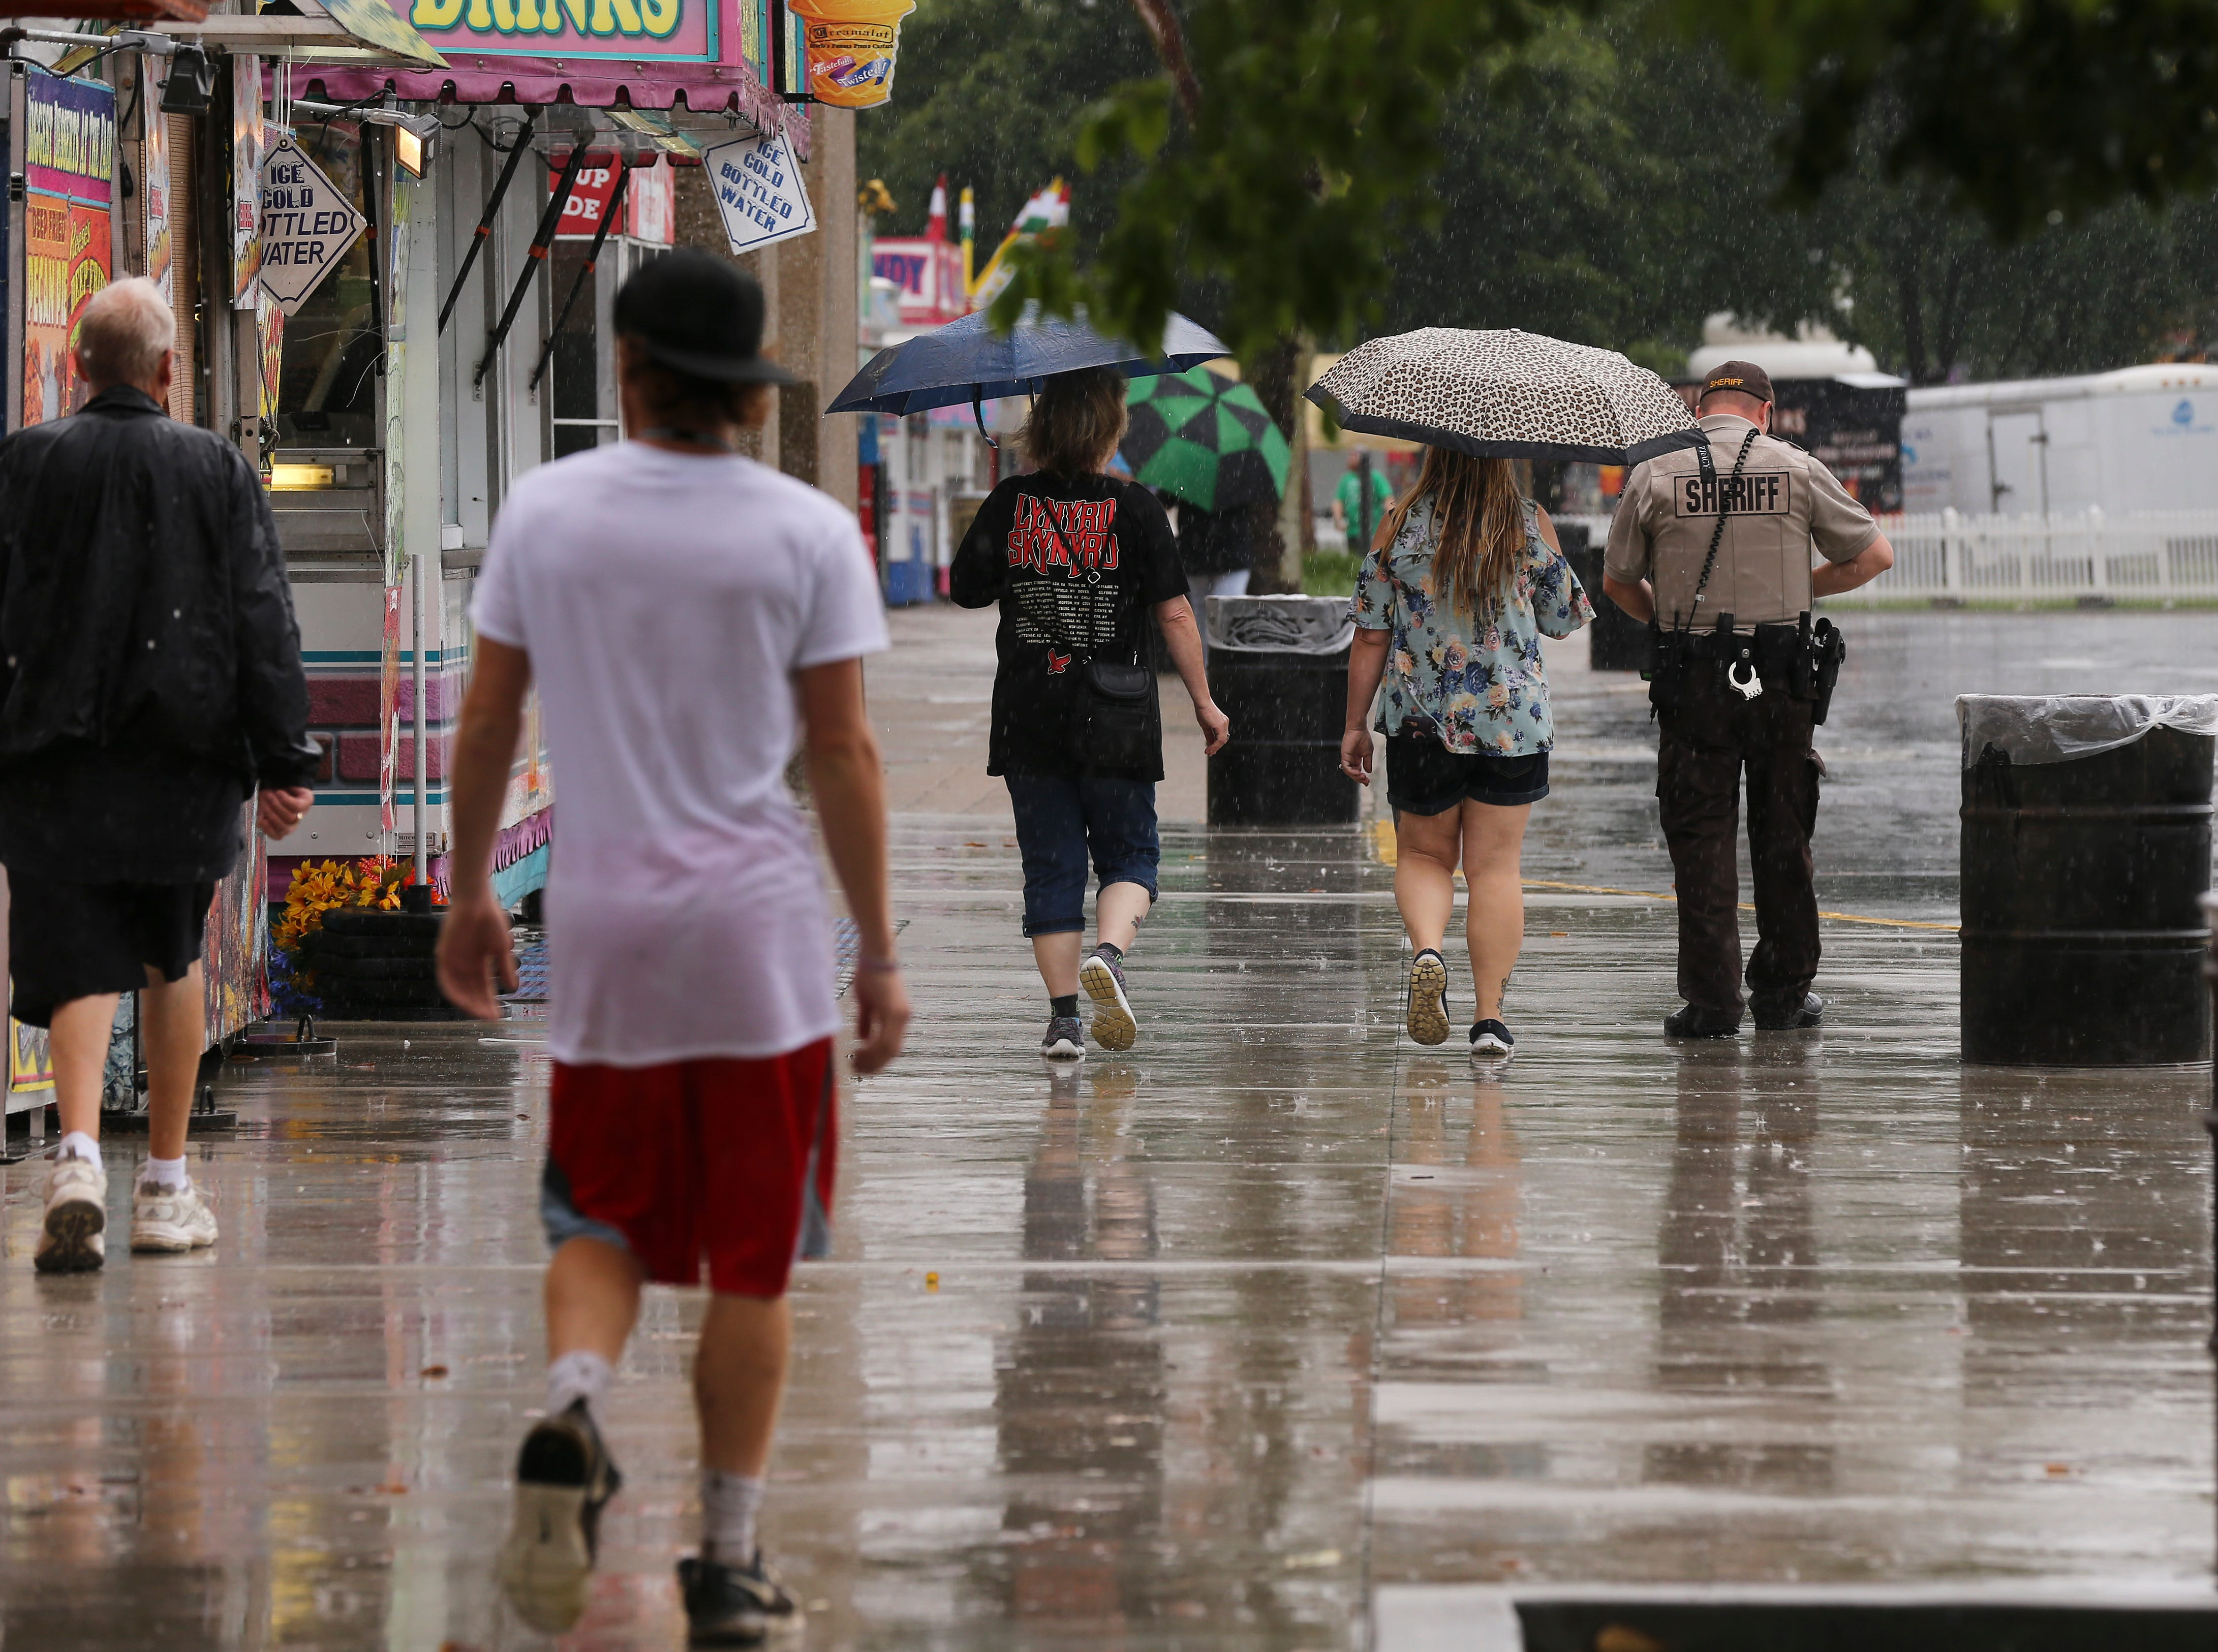 Fairgoers braved the rain on the first day of the Kentucky State Fair.Aug. 16, 2018